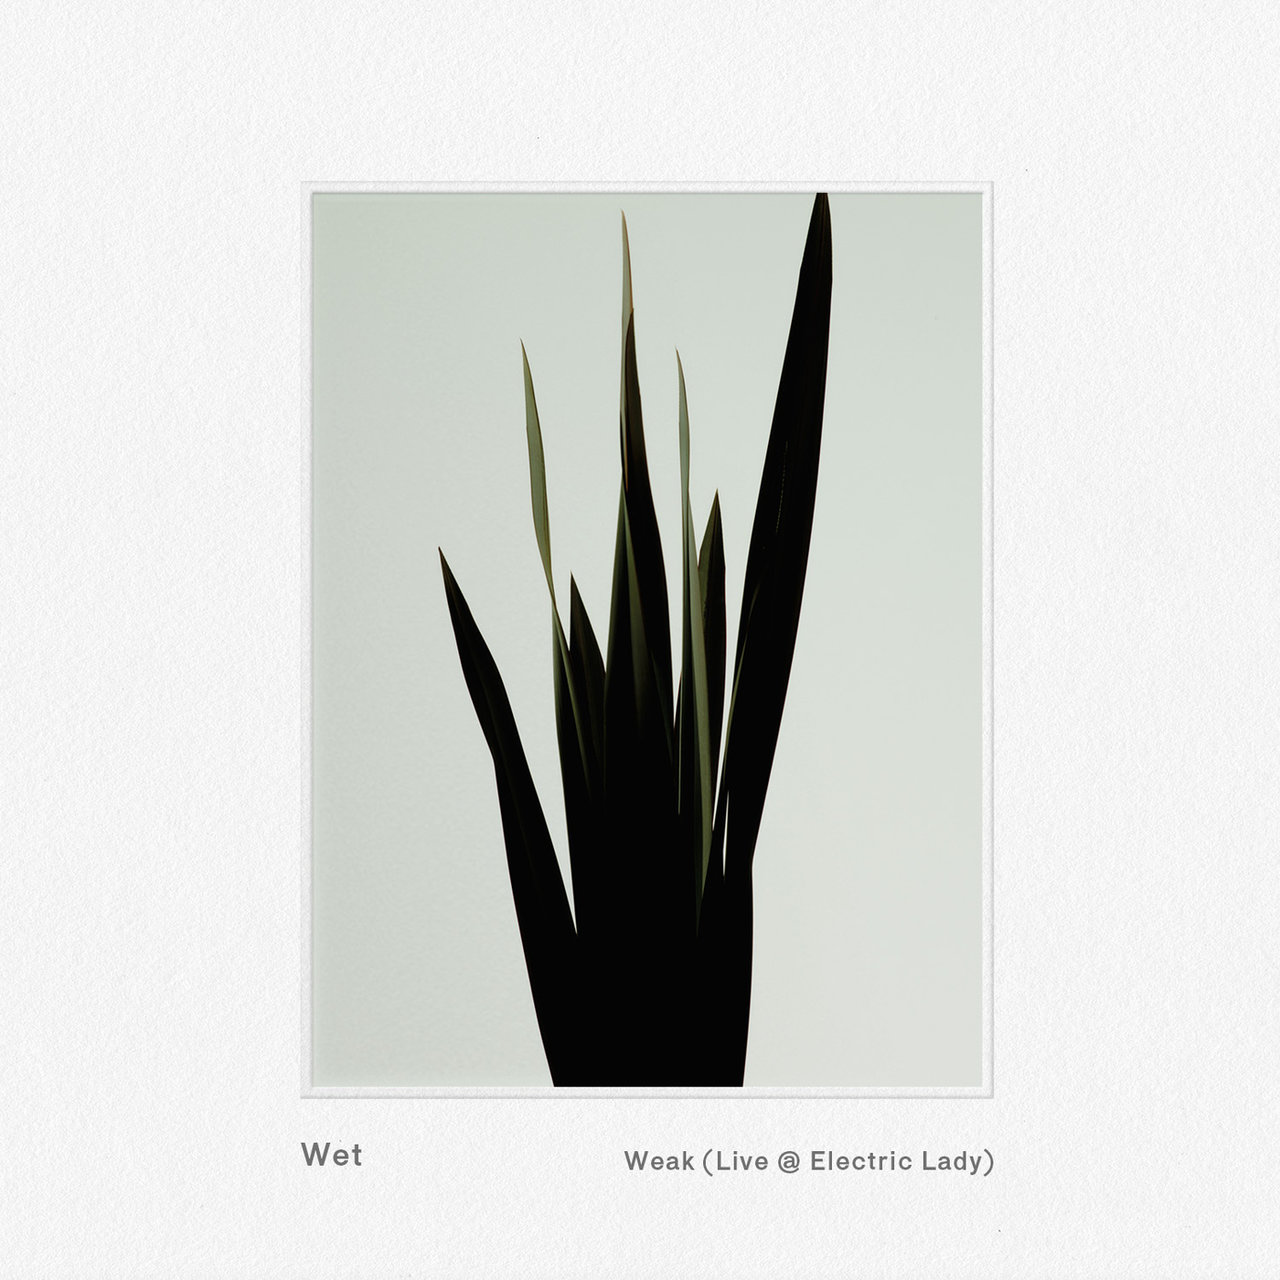 Weak (Live @ Electric Lady)